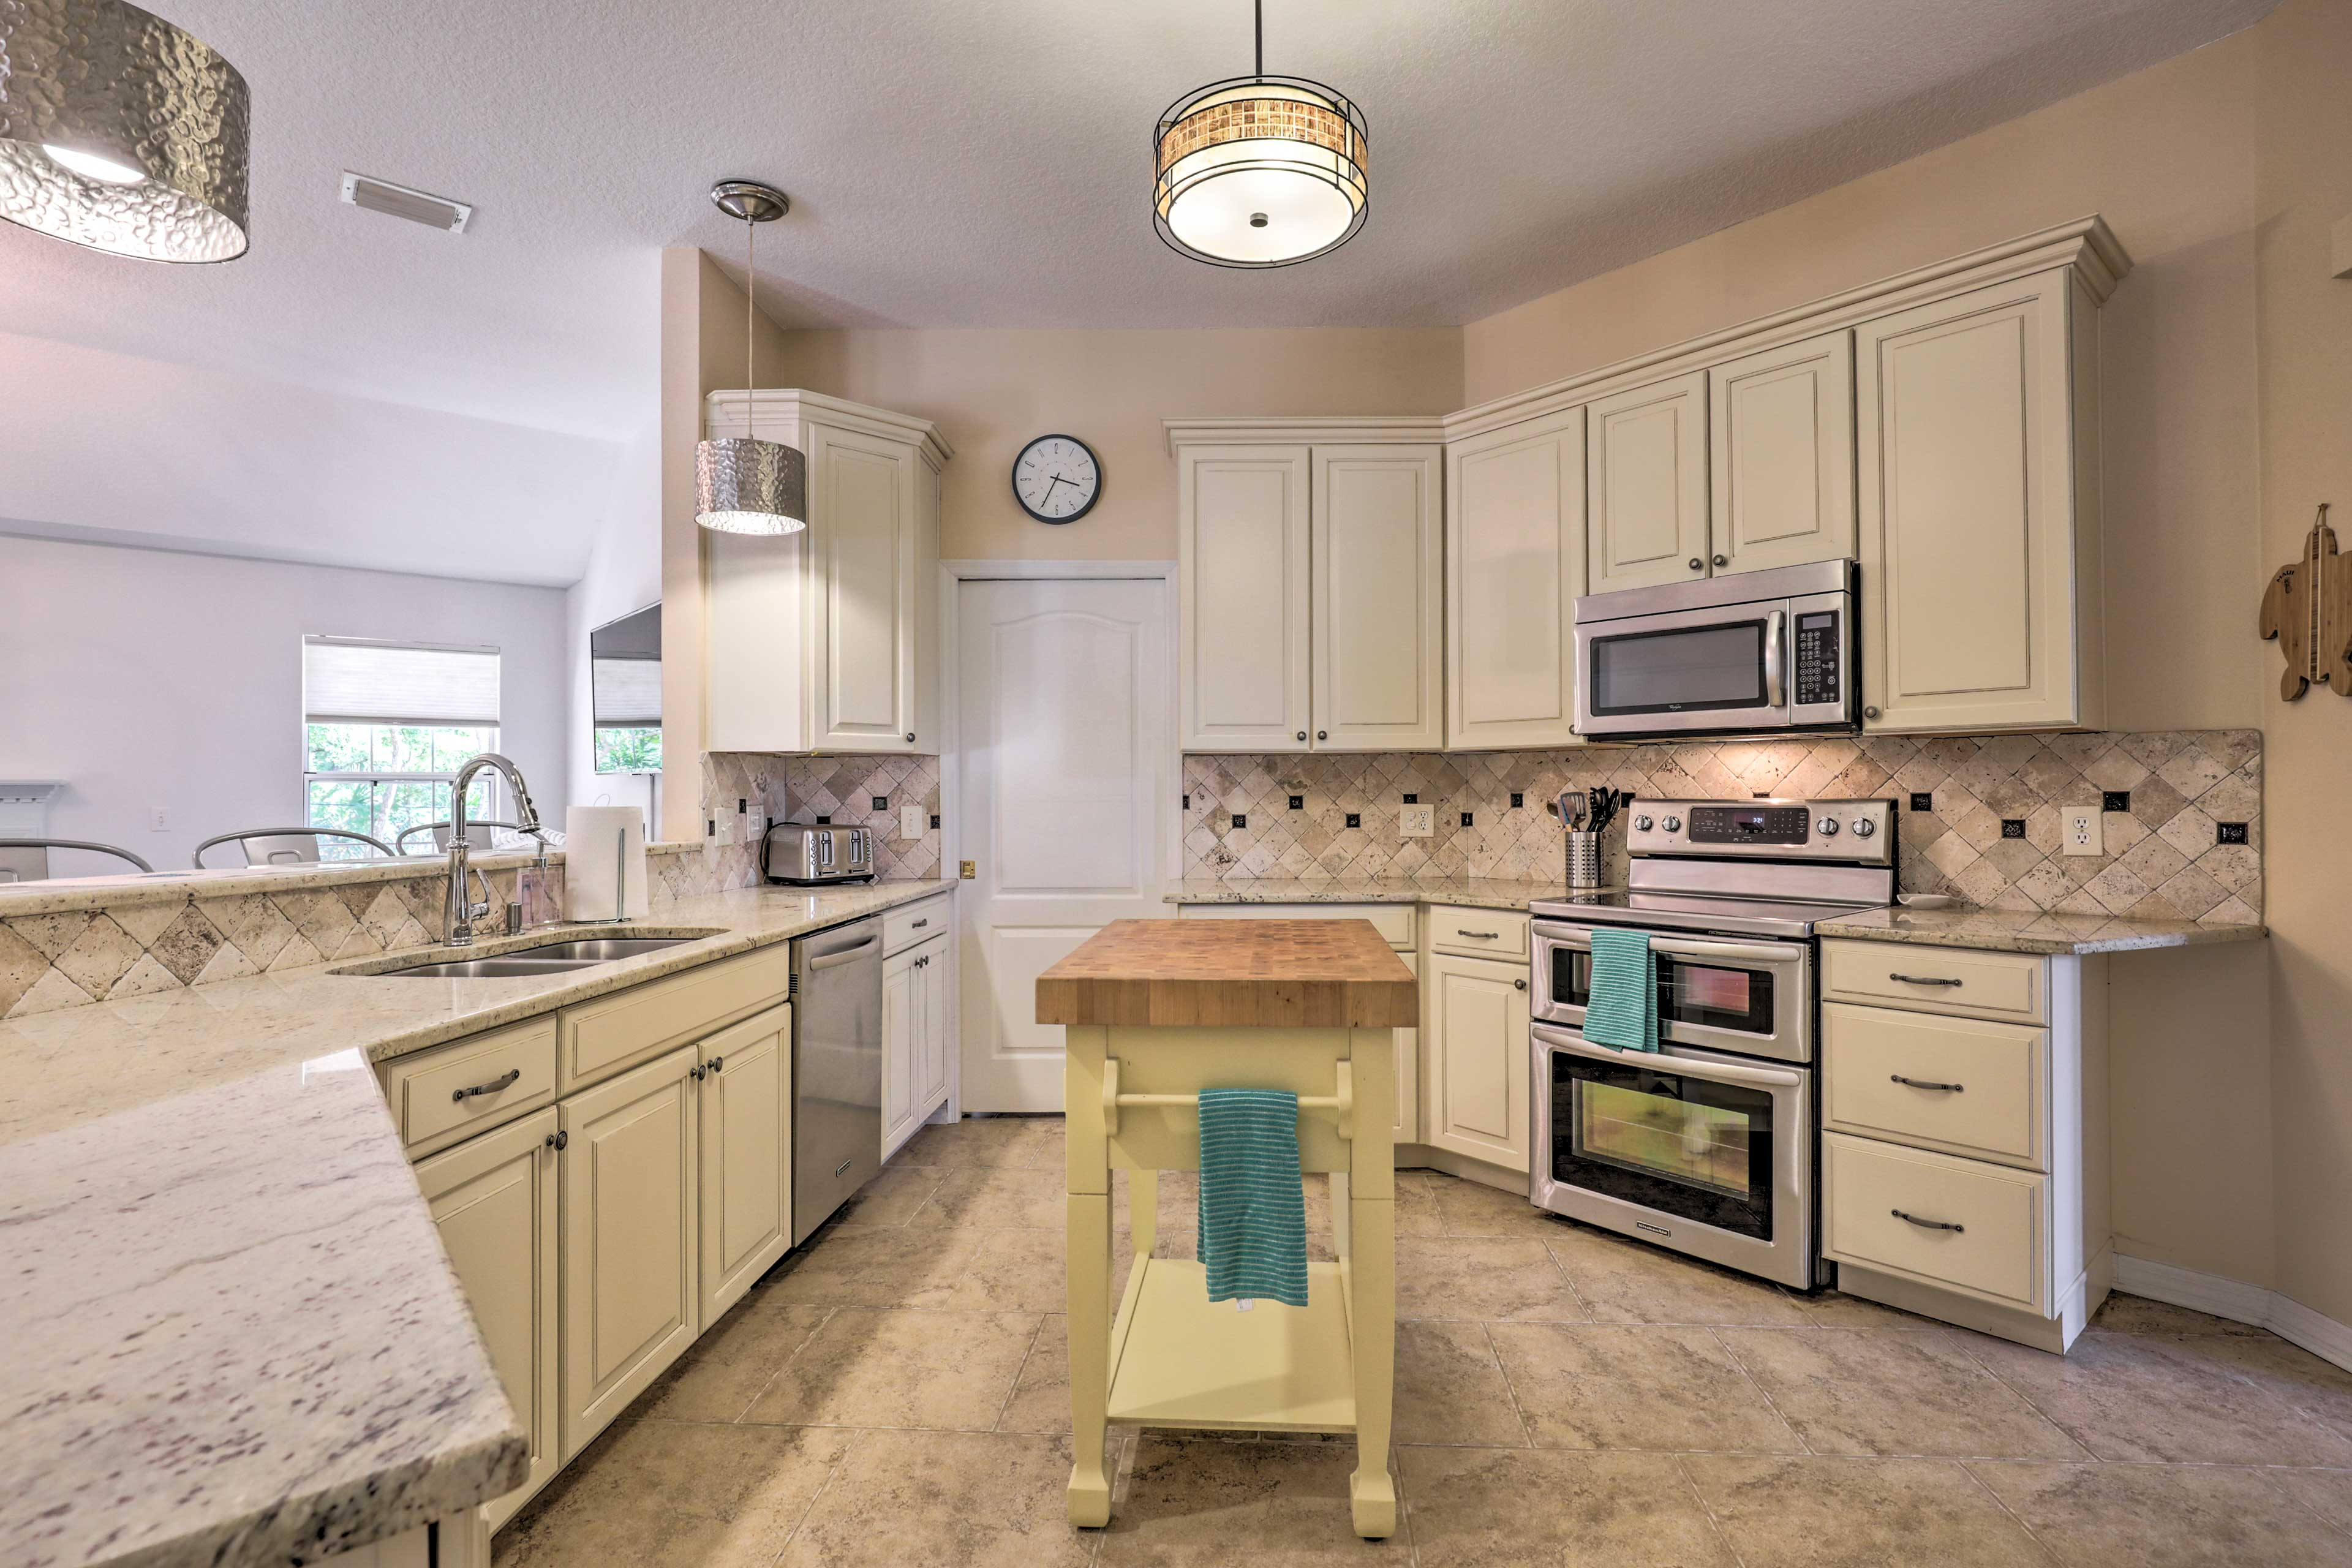 The fully equipped kitchen makes it easy to cook your favorite meals.